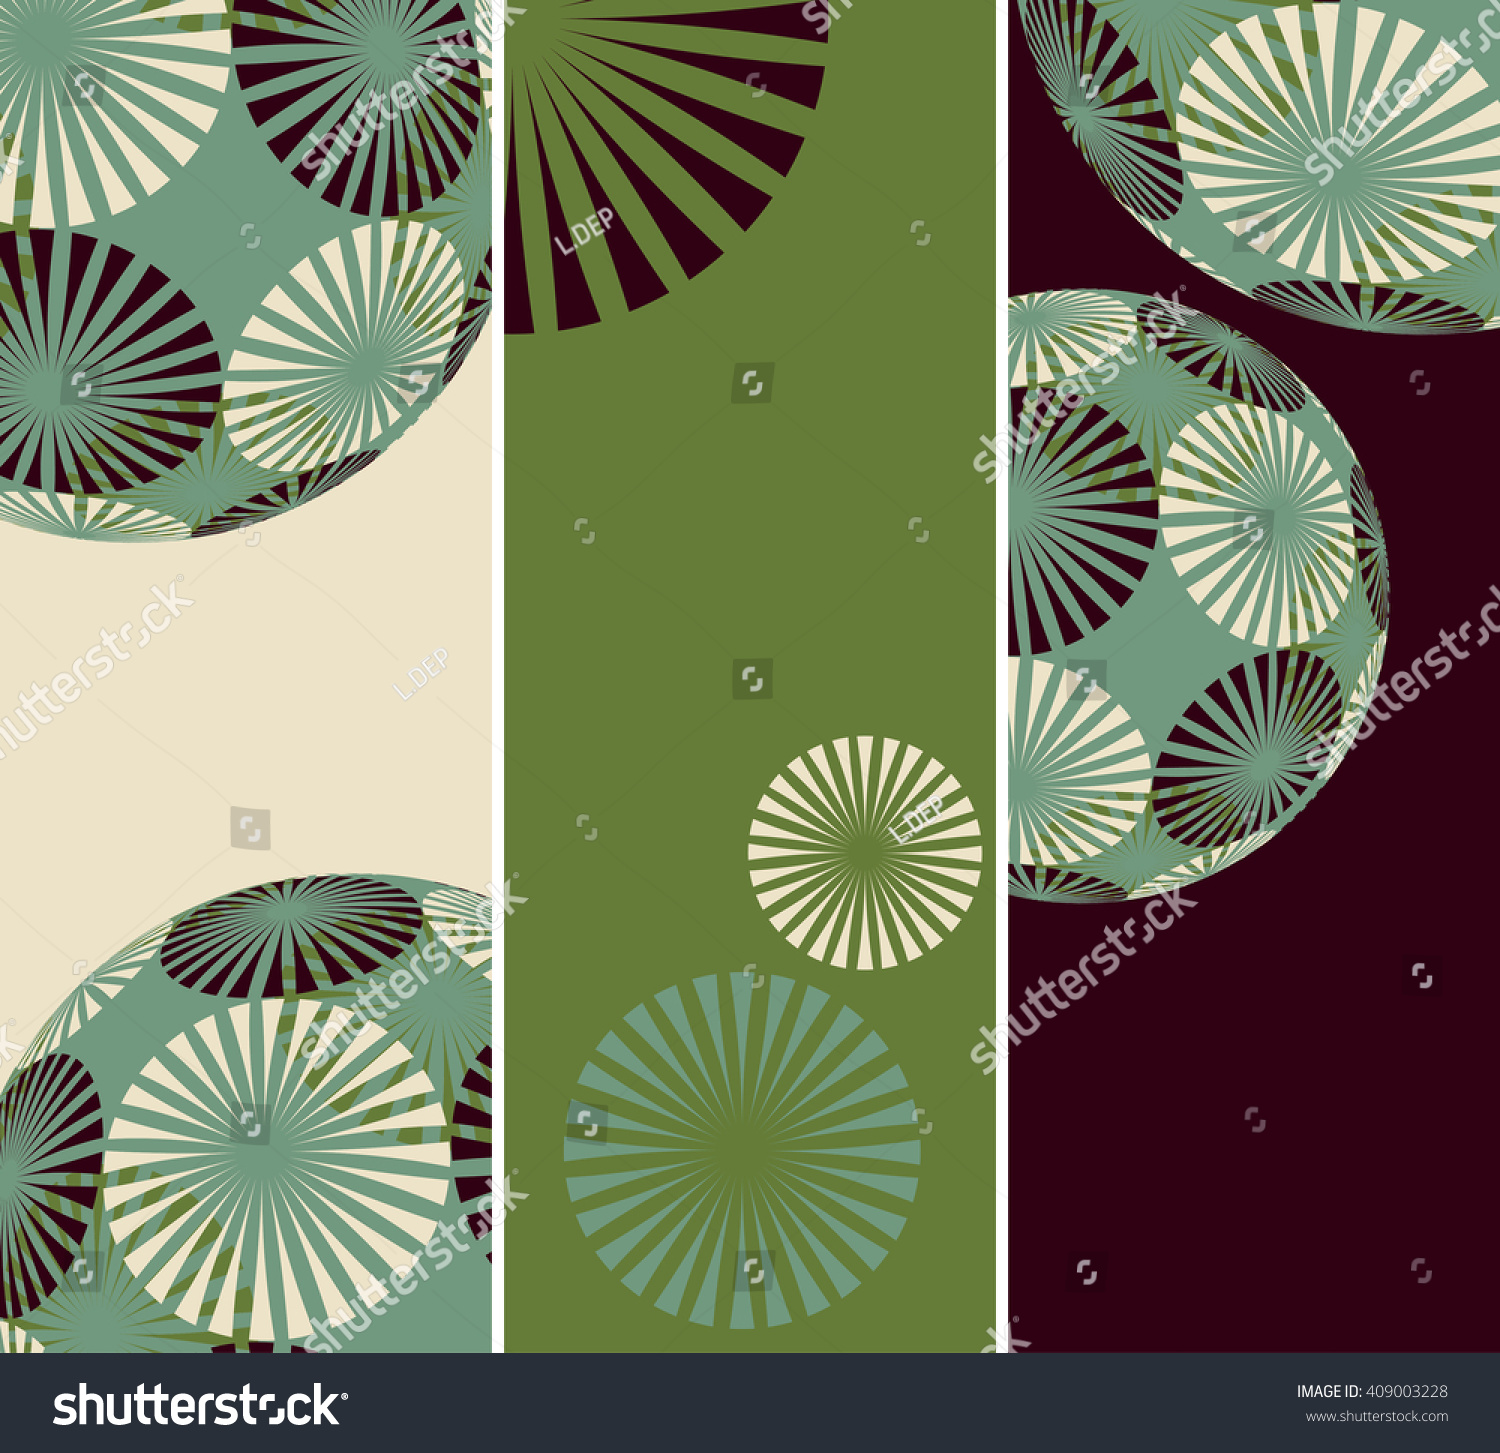 Set 3 Bookmark Backgrounds Flower Balls Stock Photo (Photo, Vector ...